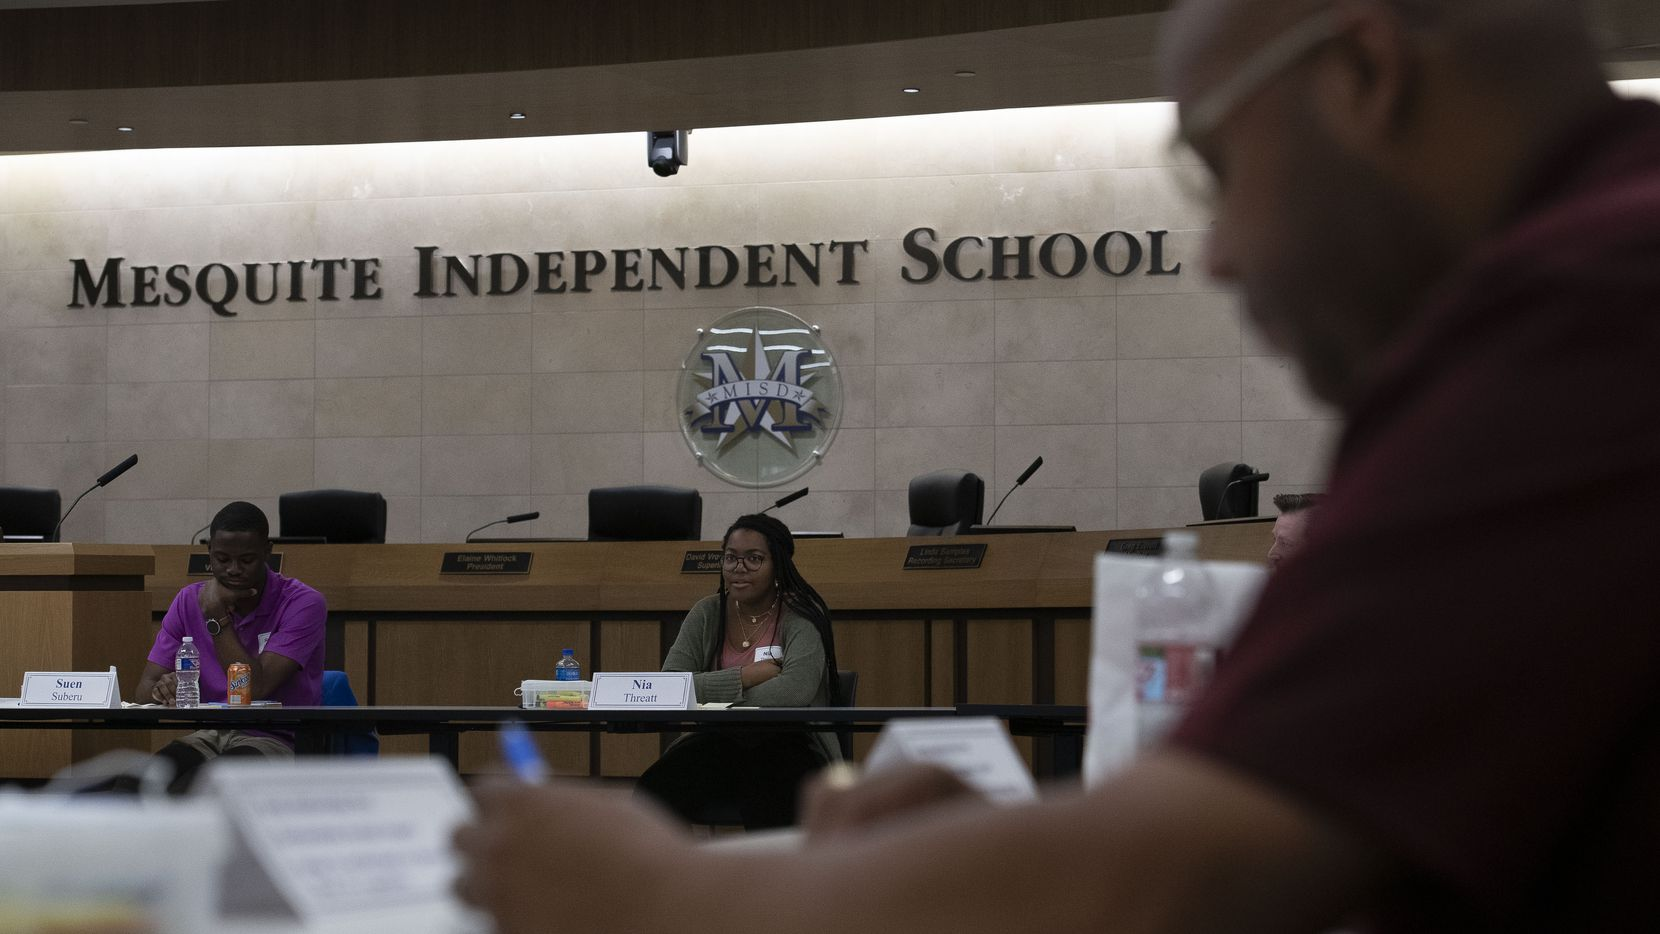 An election for two Mesquite ISD school board seats is approaching, with early voting starting next Monday.